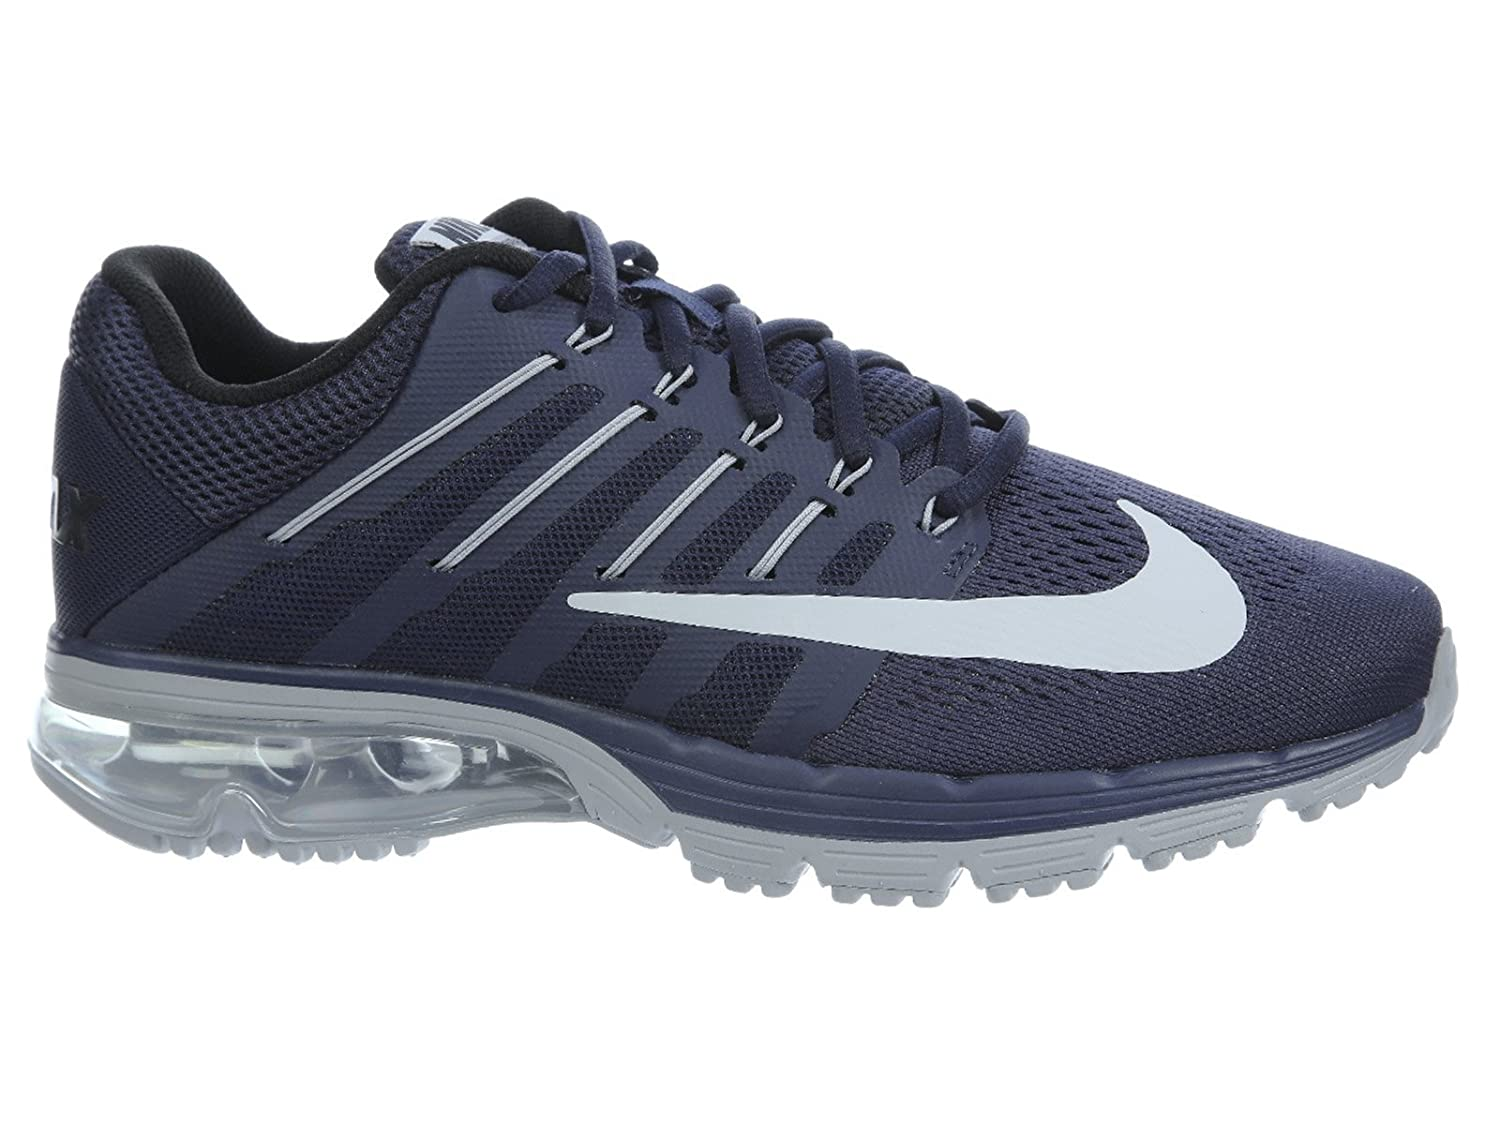 Nike Men's Air Max Excellerate 4 Midnight Navy/Wolf Grey/Black Shoe - 15 D(M) US